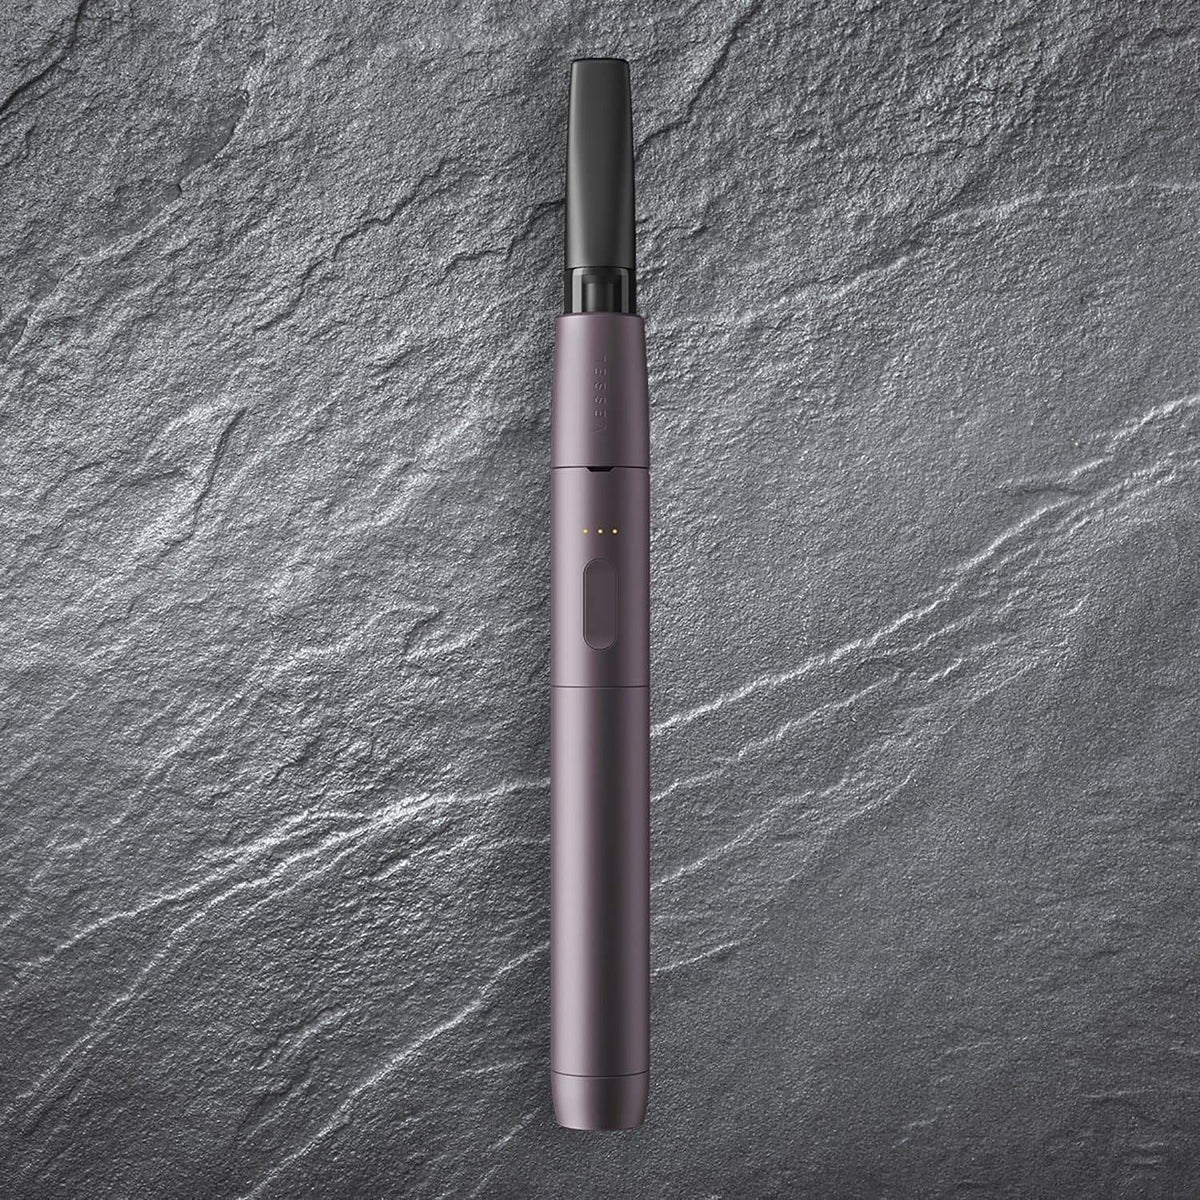 Vessel Style Series Vape Pen Battery in Aubergine (Alternate Background)